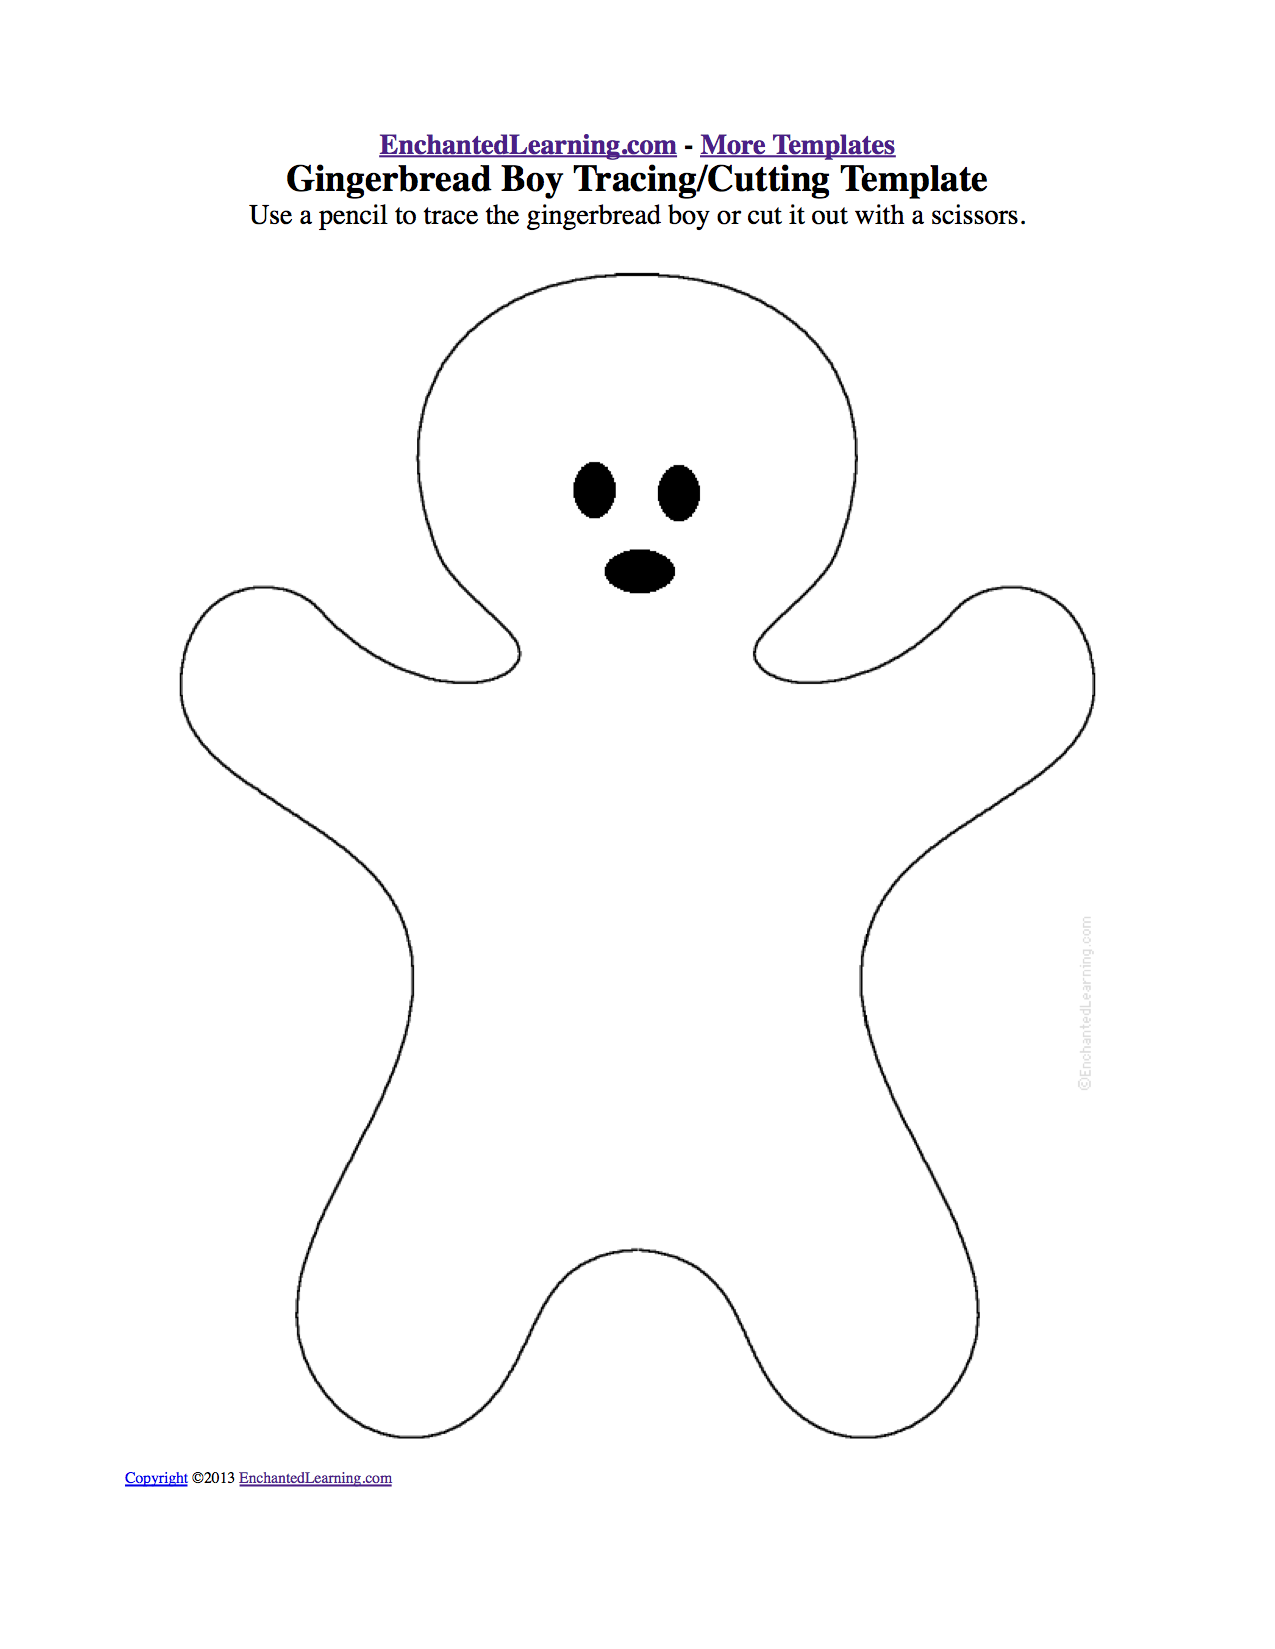 gingerbread boy trace or cut out